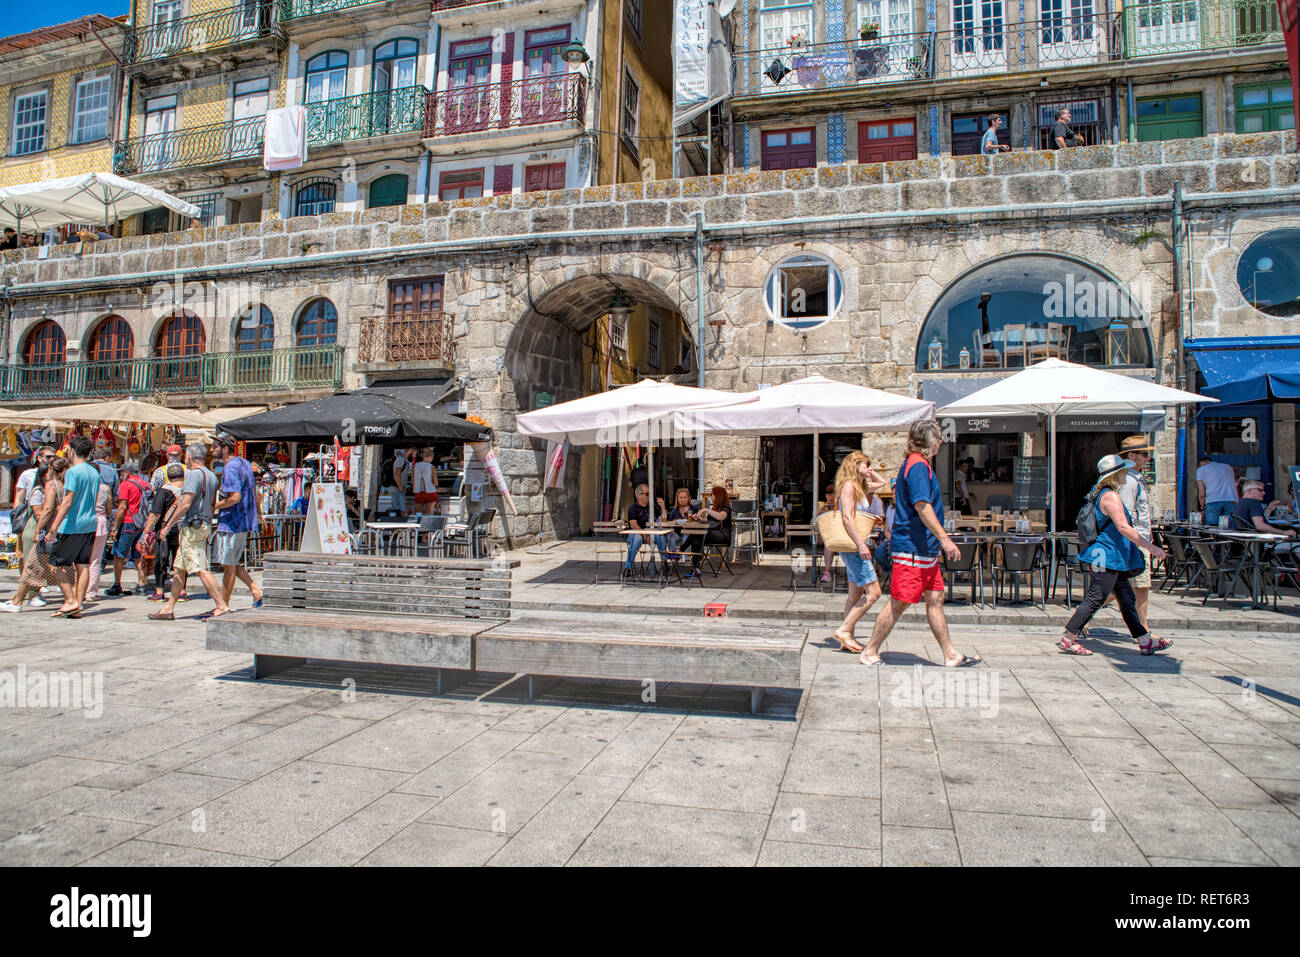 people at street restaurant on the embankment of Porto. Porto historical core was proclaimed a World Heritage Site - Stock Image